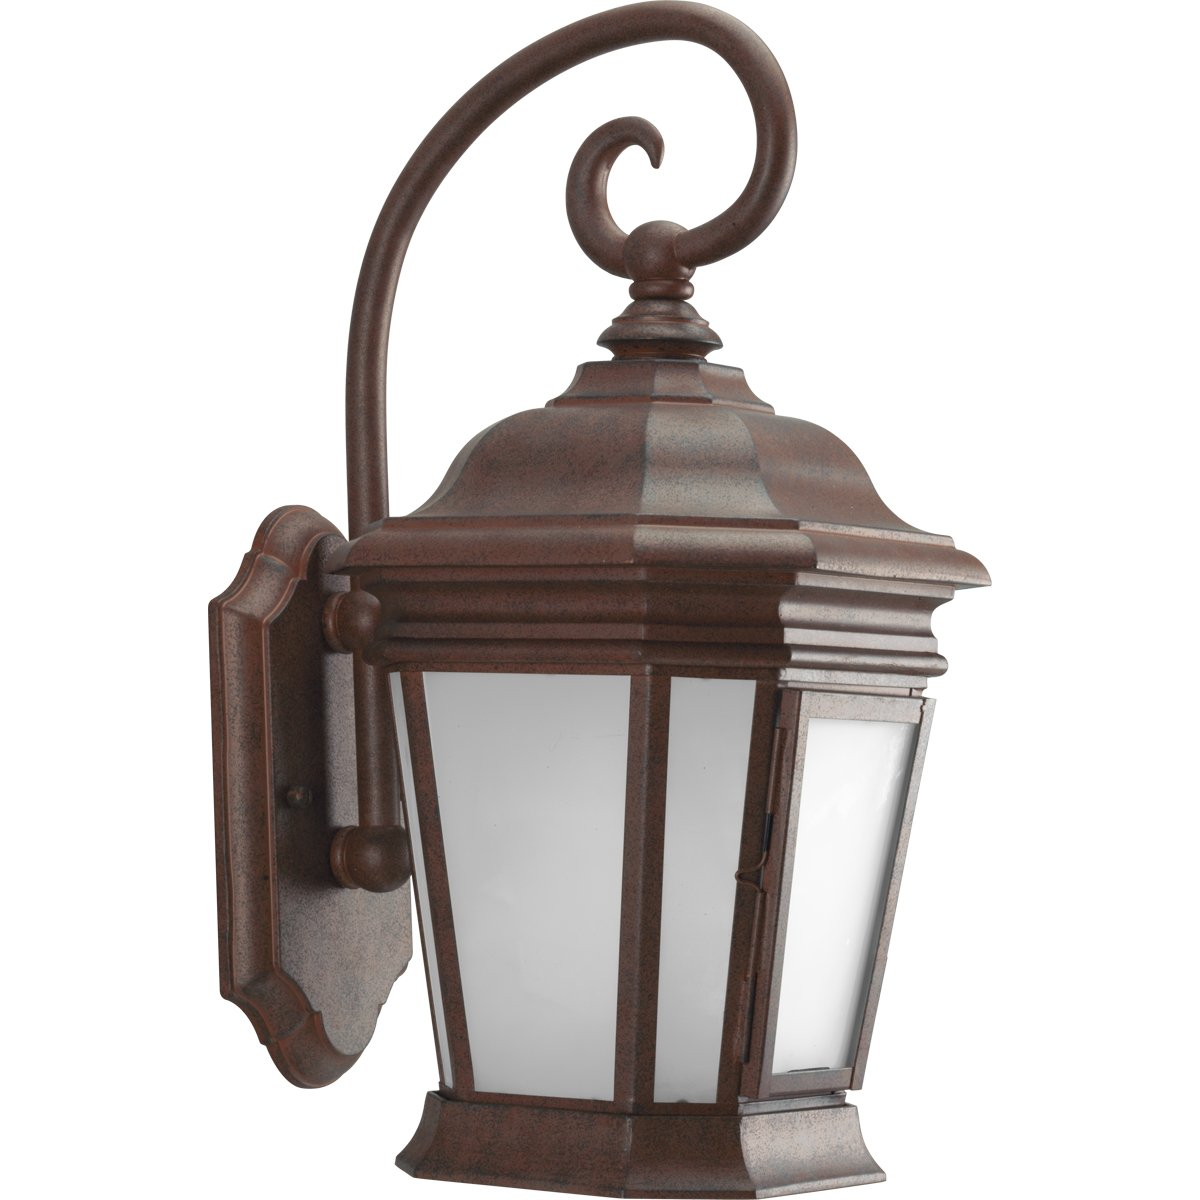 Progress Lighting P5686-33EB One-Light Etched Glass Wall Lantern with Photocell and 120 Volt Normal Power Factor Electronic Ballast, Cobblestone by Progress Lighting (Image #1)